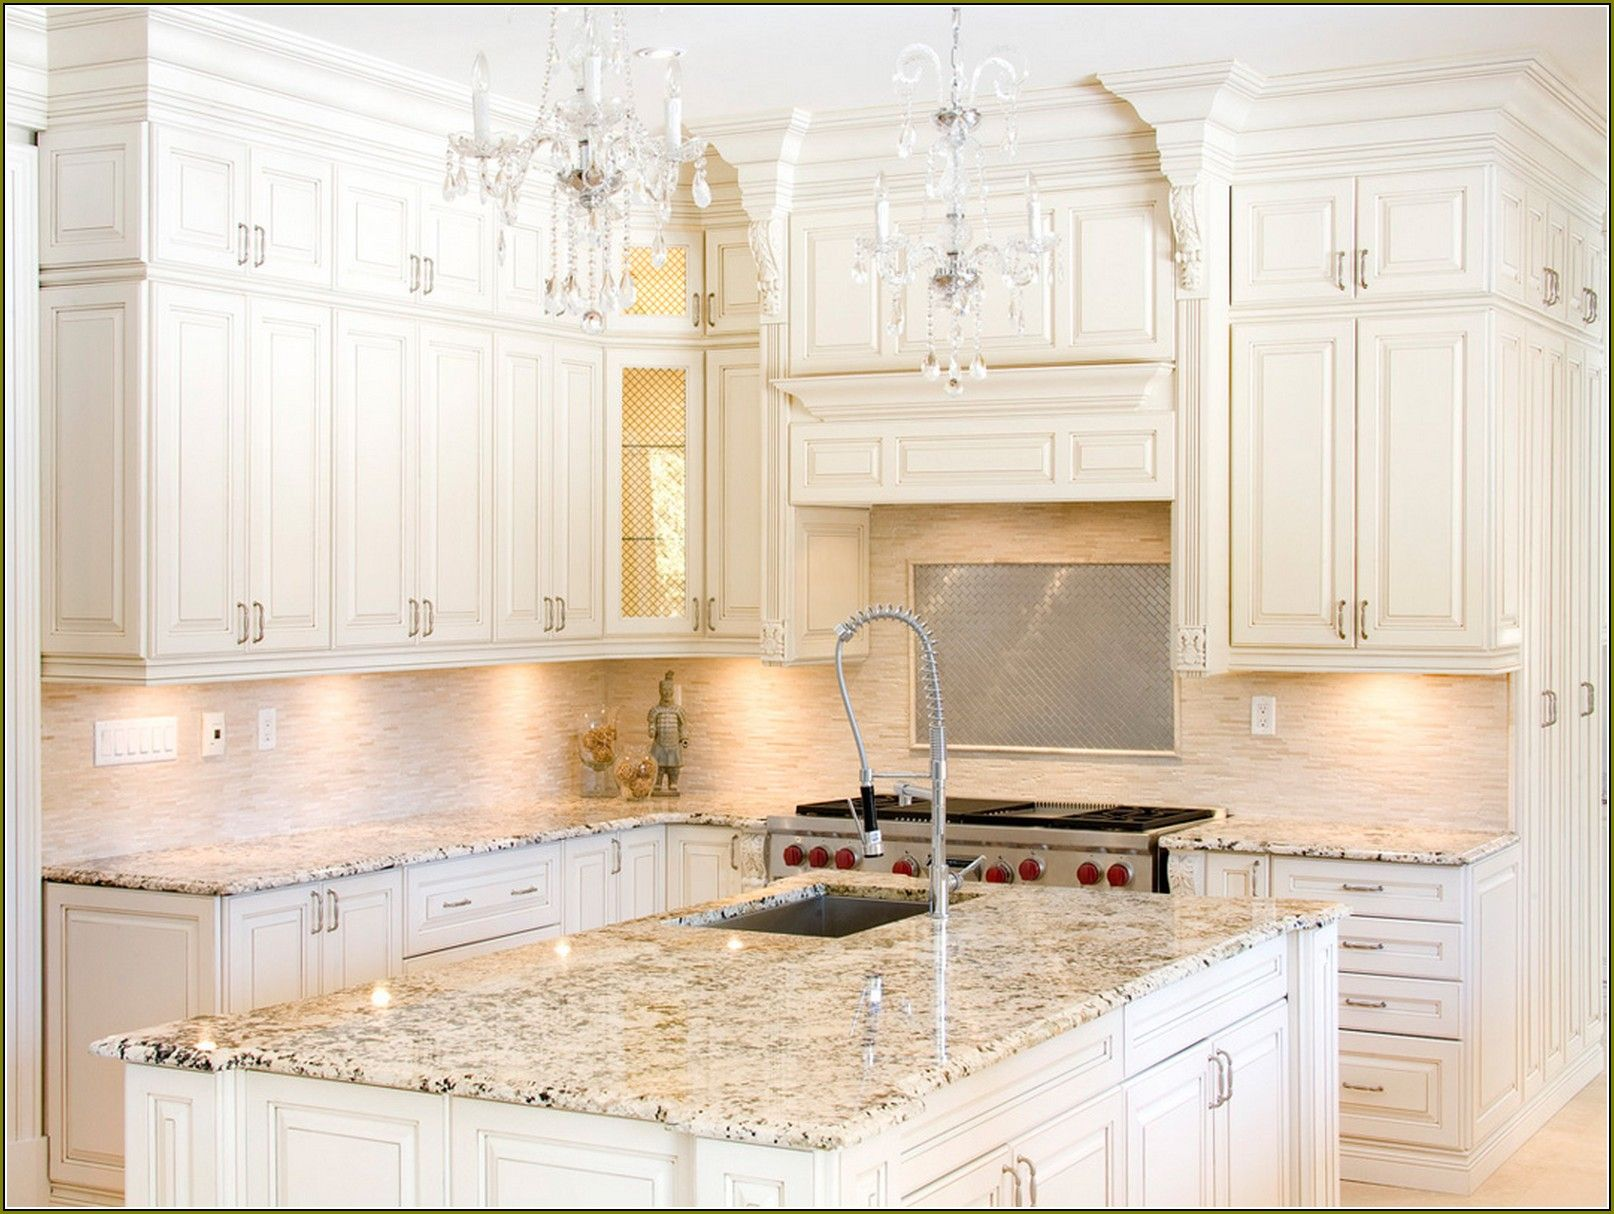 Off White Kitchen Cabinets With Granite Countertops Home Design Ideas Antique White Kitchen Beige Kitchen Antique White Kitchen Cabinets